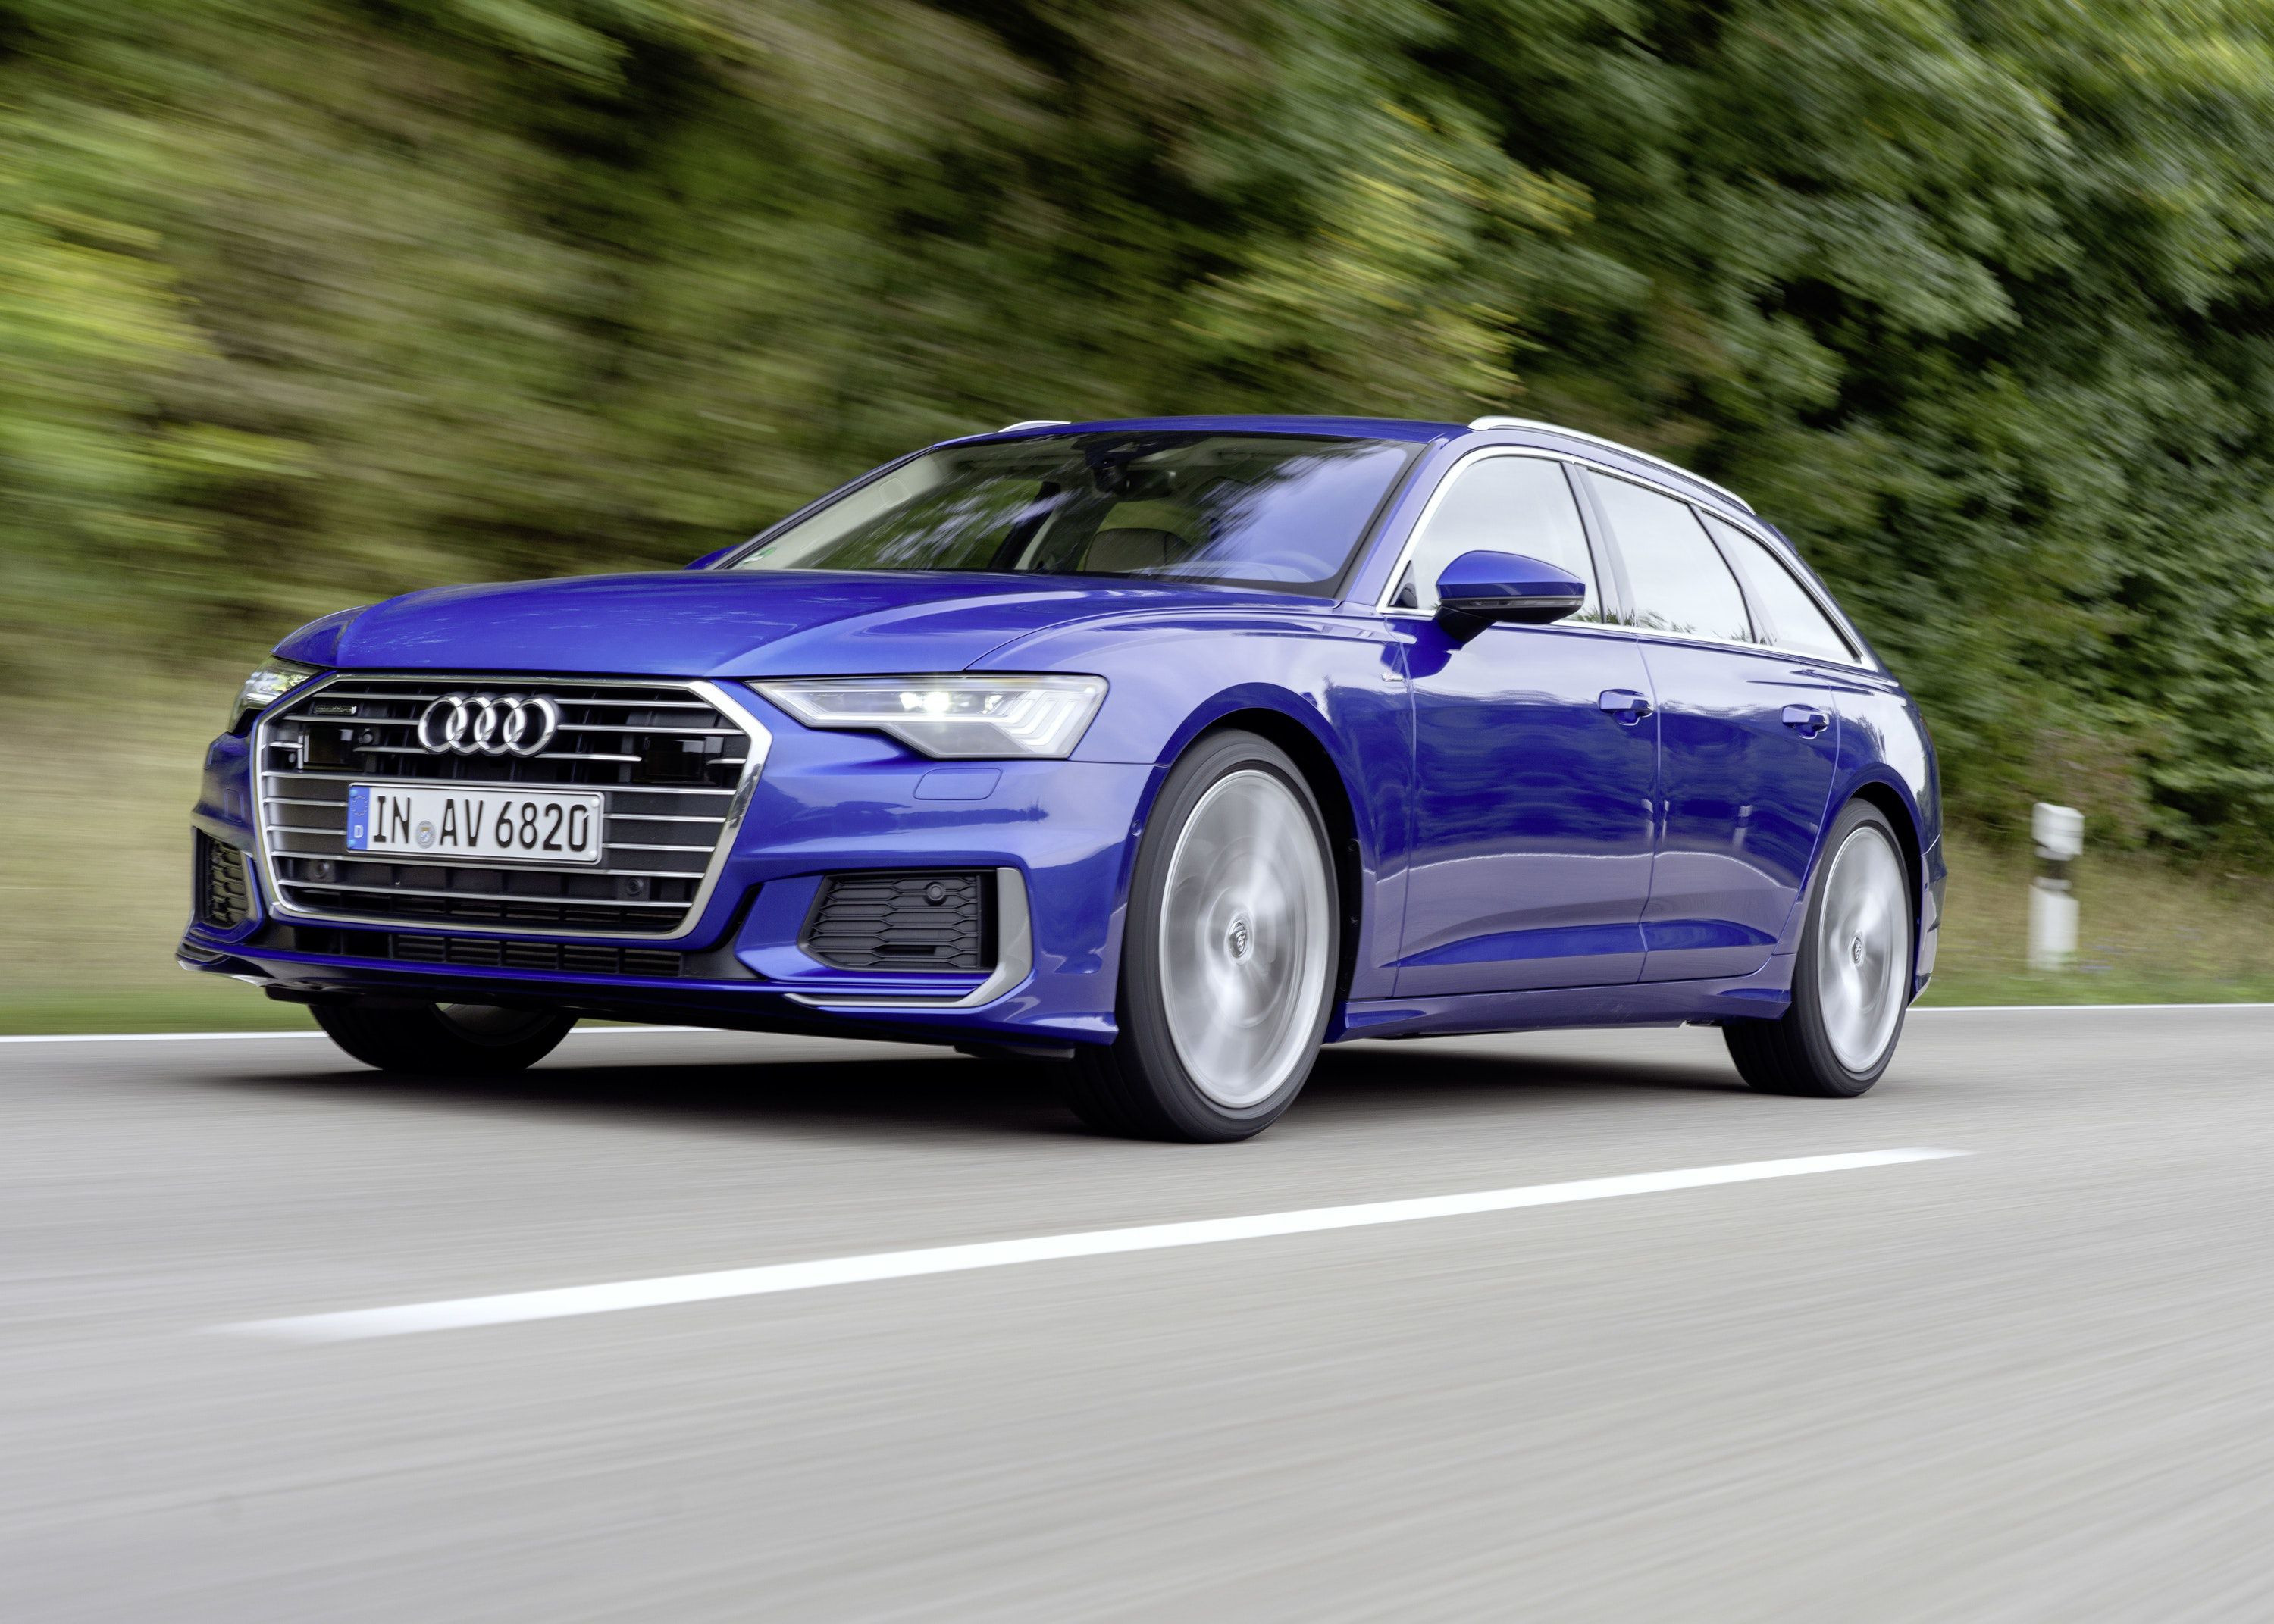 Audi A6 Avant driving on a road